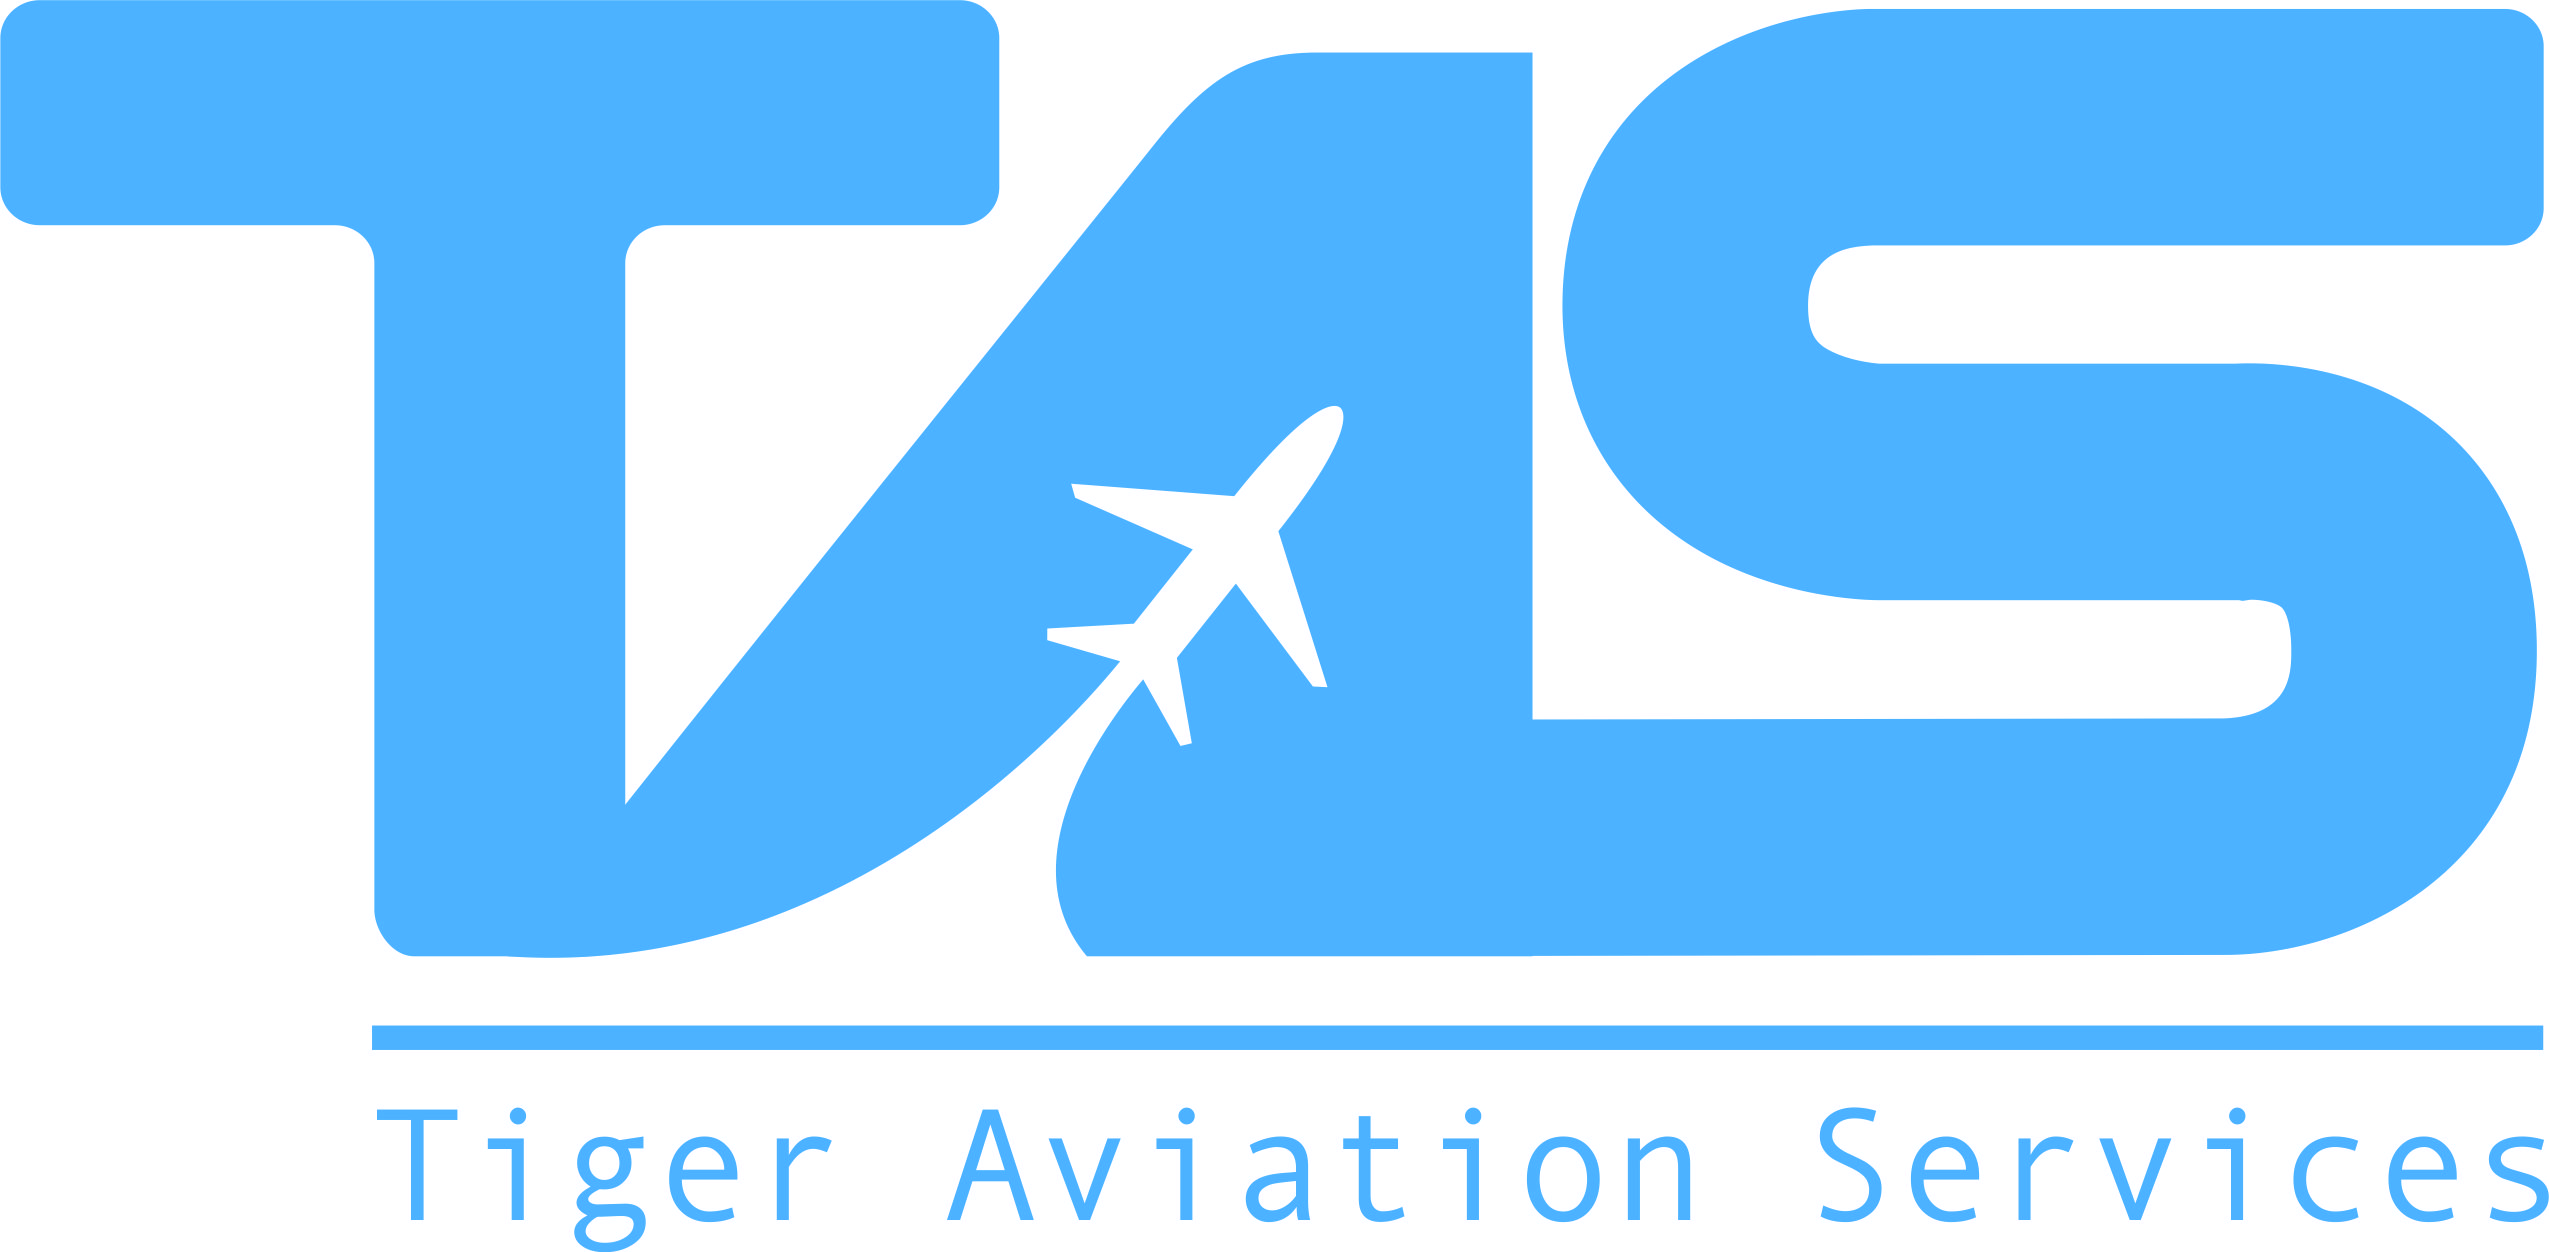 Tiger Aviation Services - TAS logo